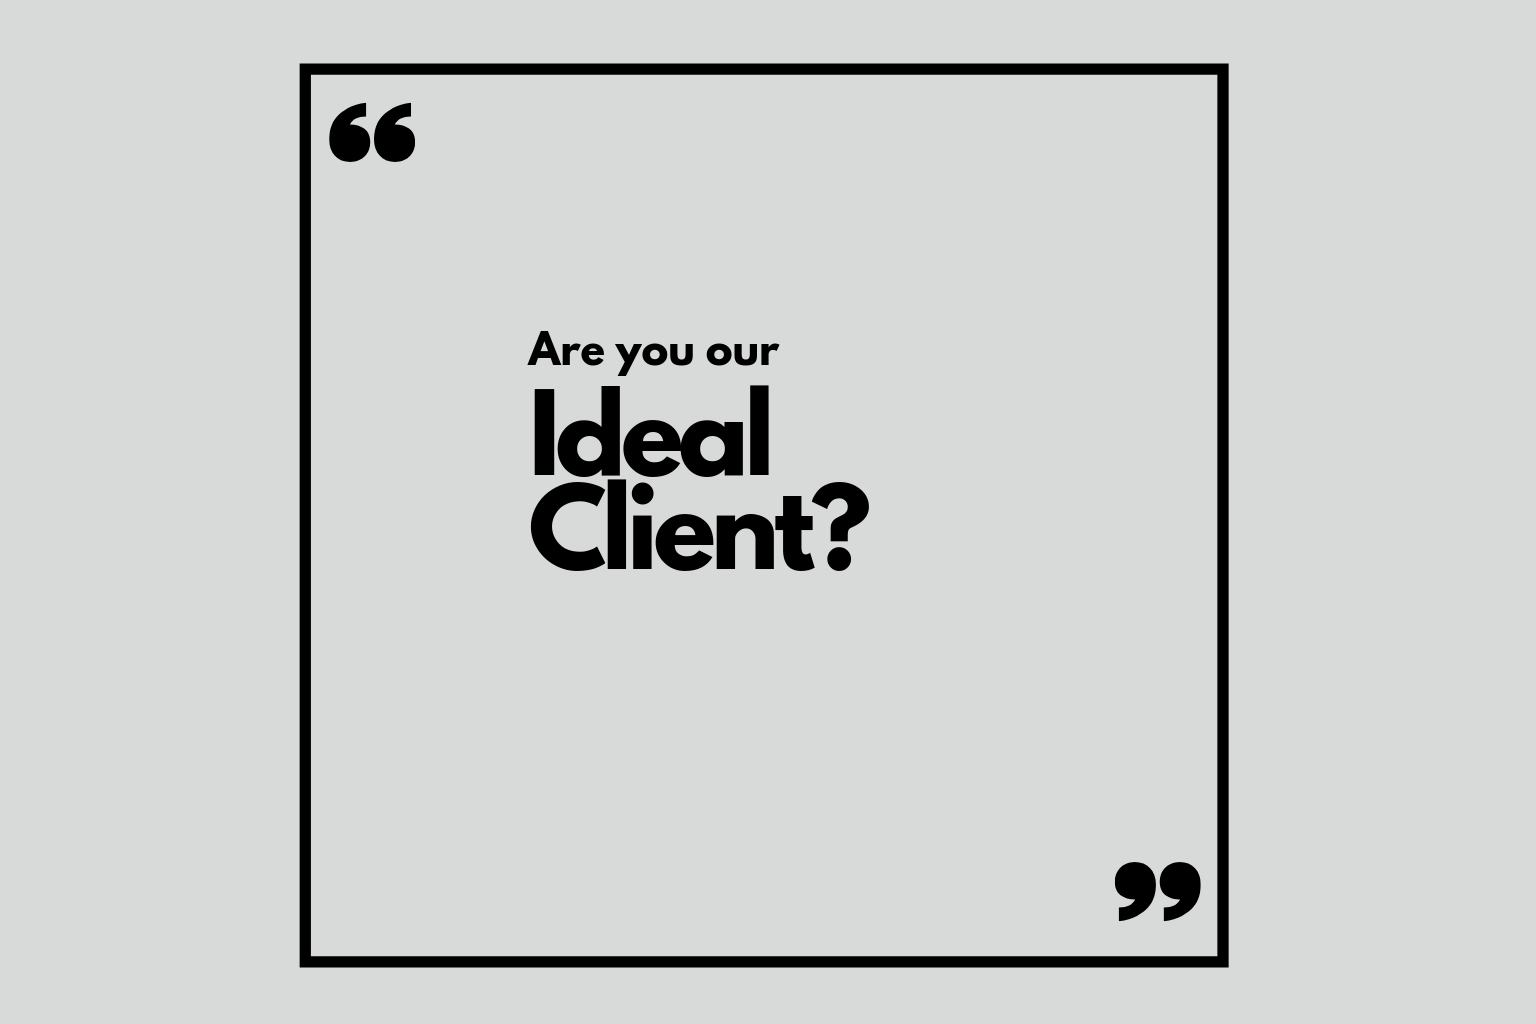 Are You Our Ideal Client?